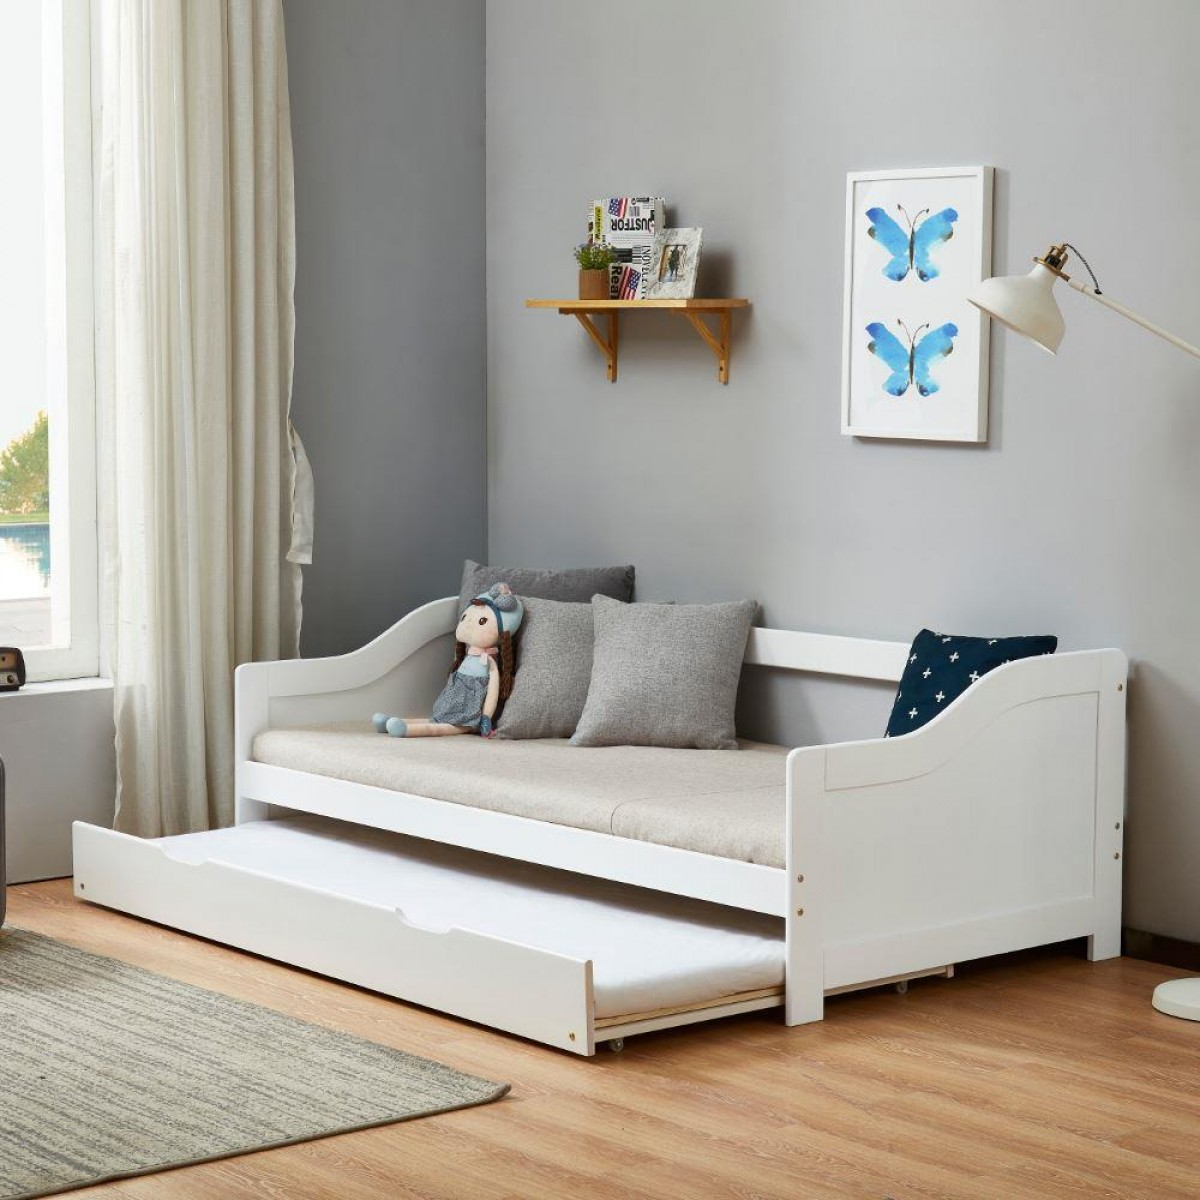 Brixton White Wooden Guest Bed